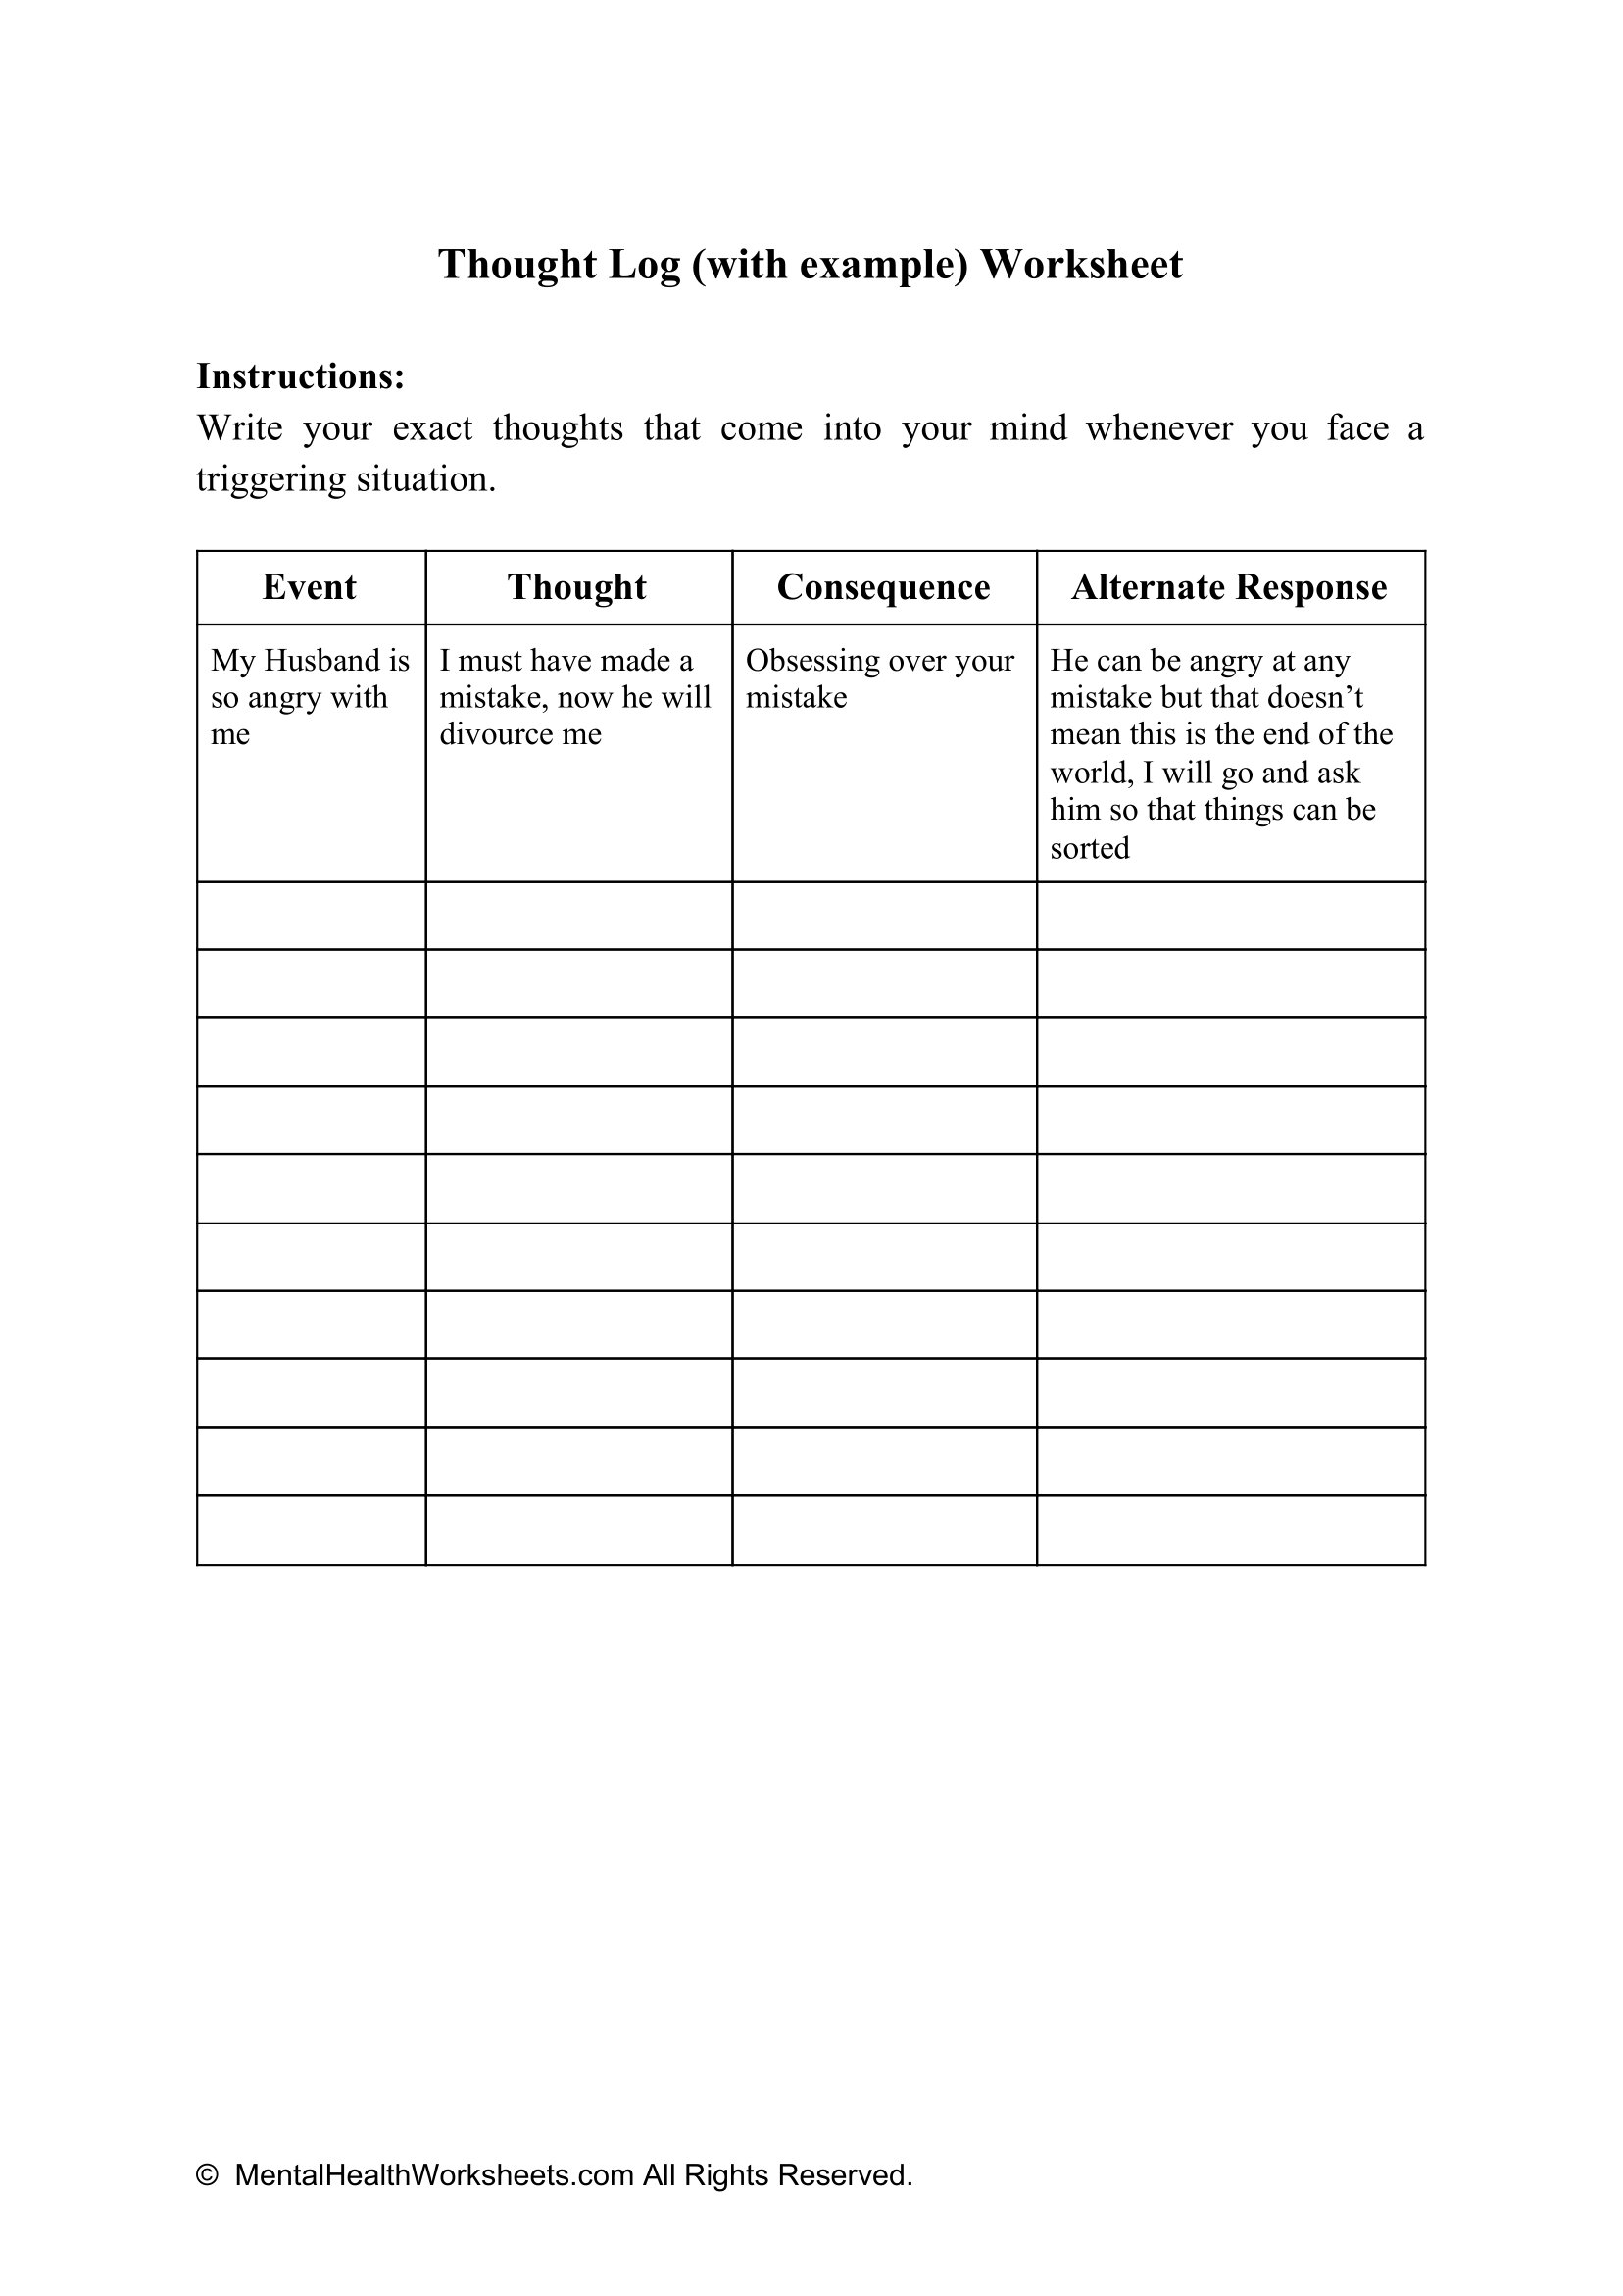 Thought Log With Example Worksheet